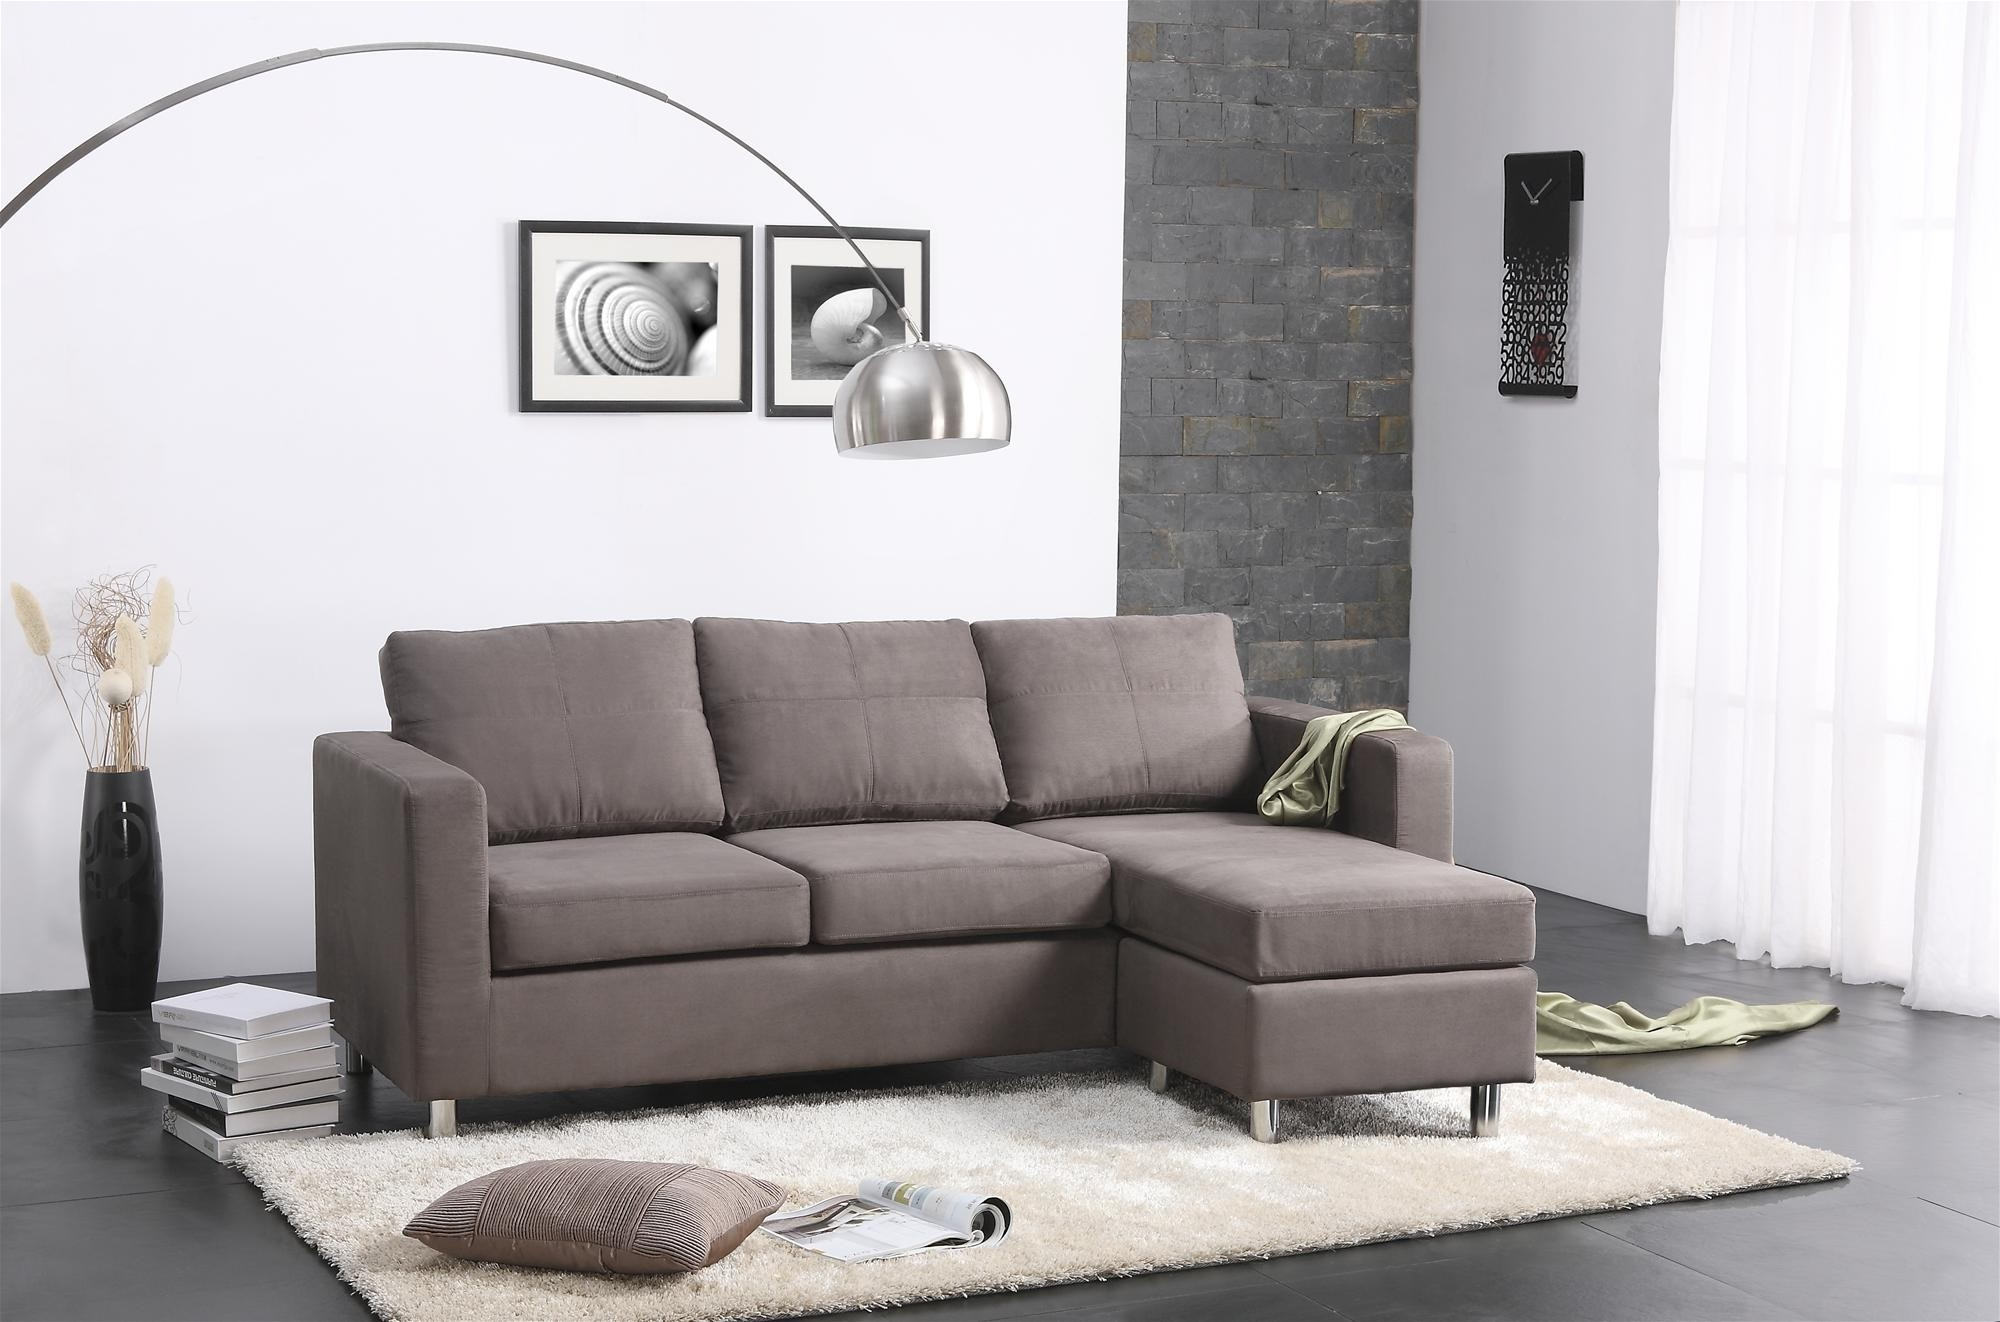 Popular High Quality Sectional Sofas 85 With Additional Abson With Quality Sectional Sofa (#9 of 12)